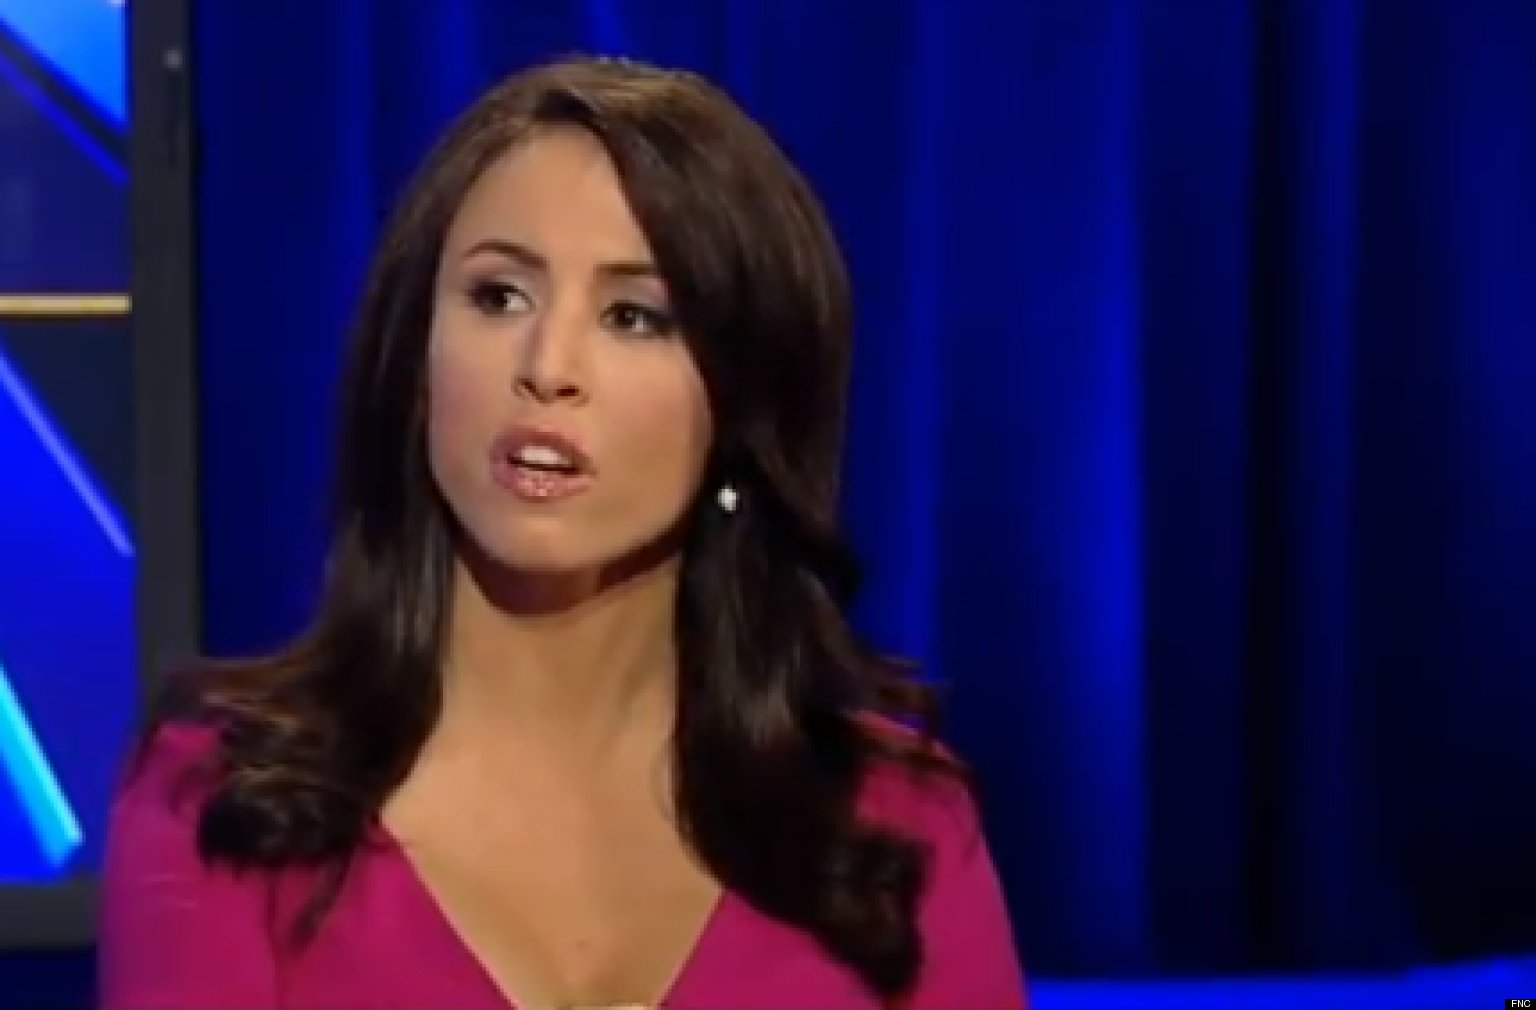 Leaked:Andrea Tantaros Nude